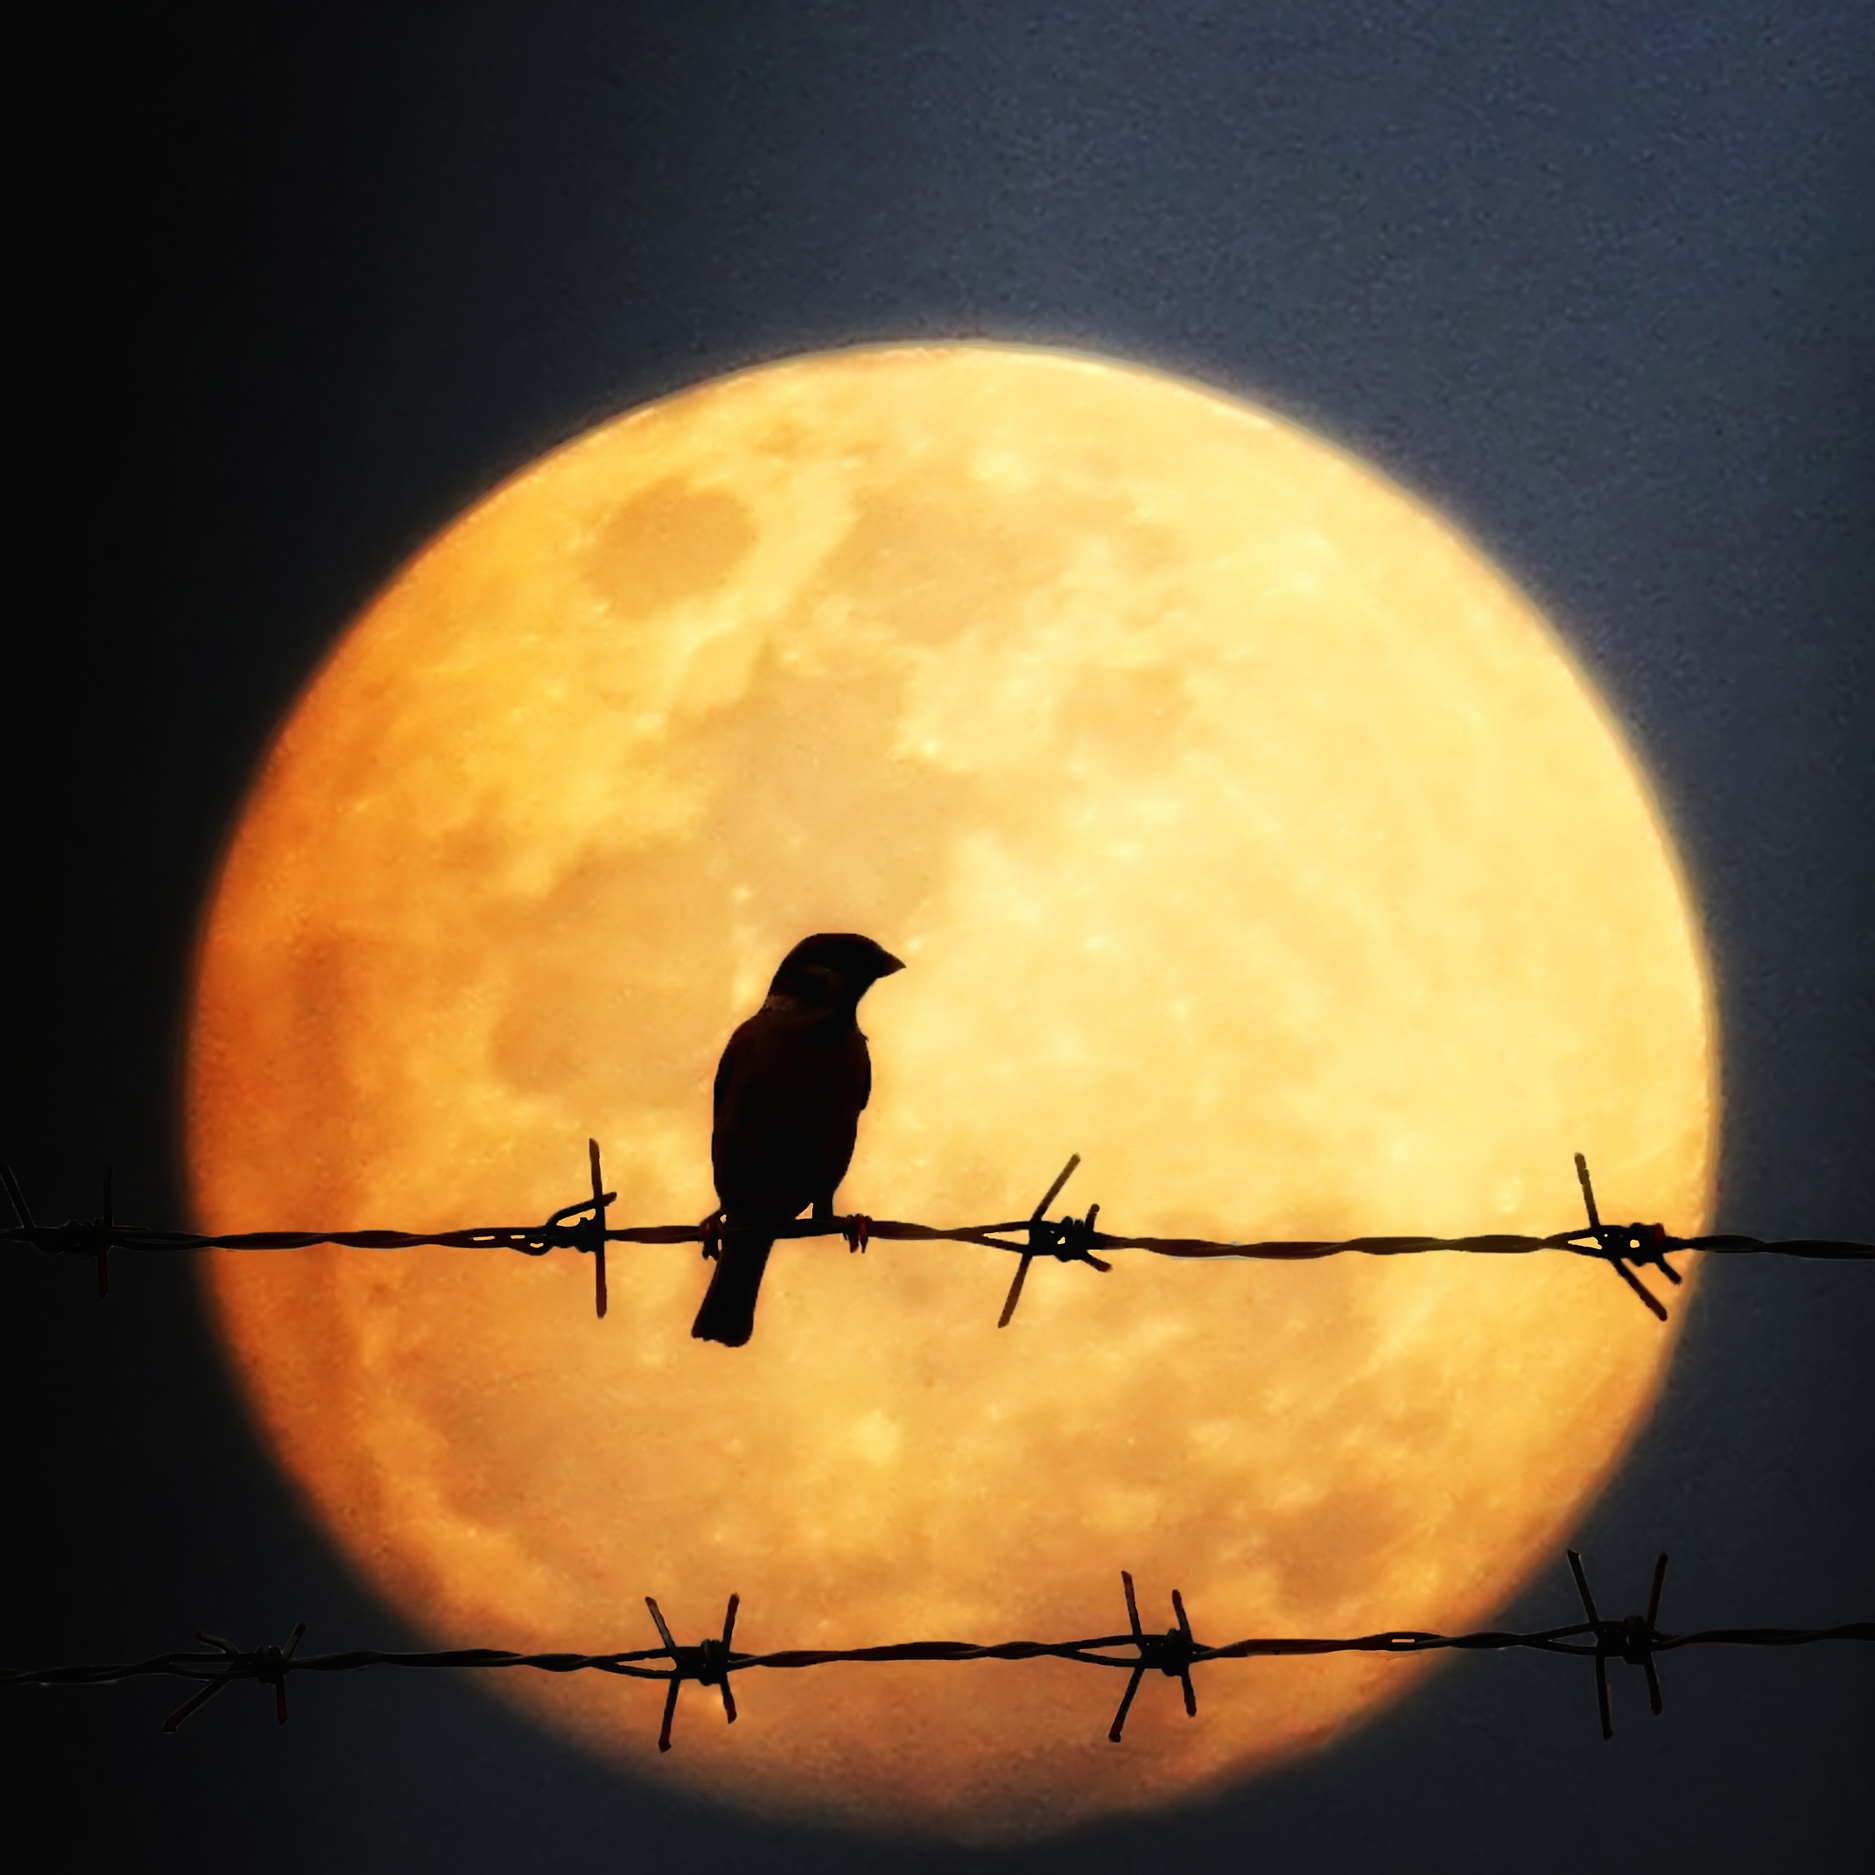 Bird and Full Moon